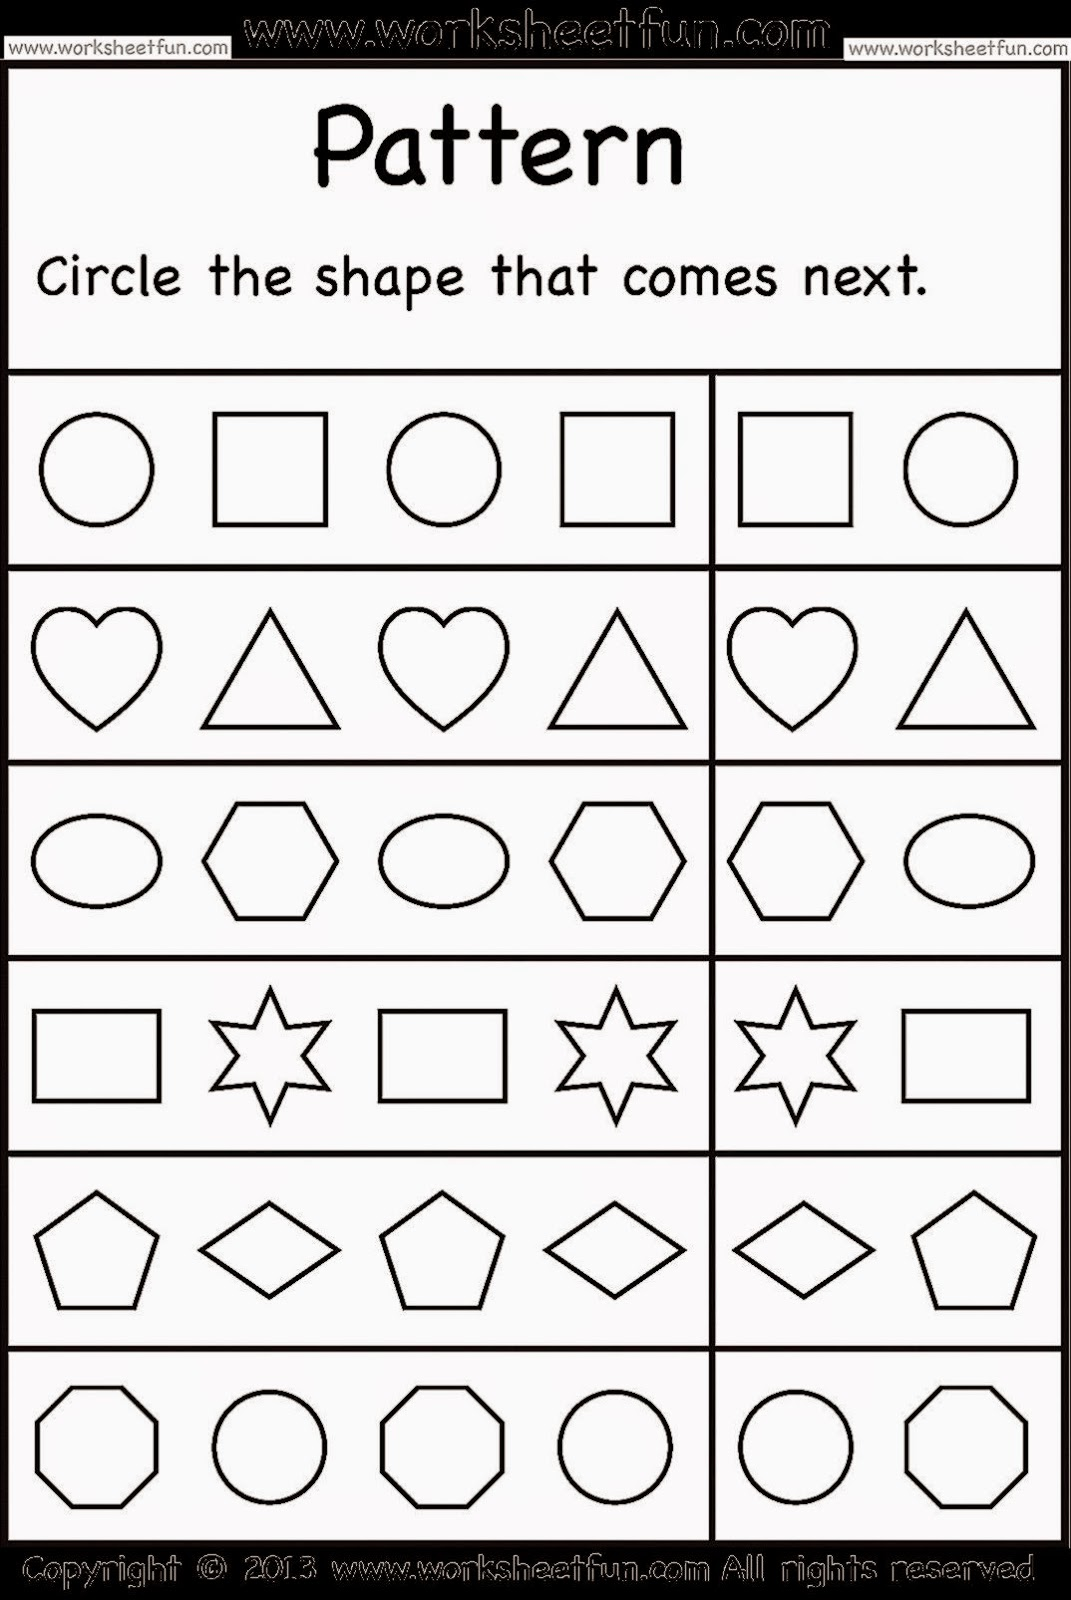 Free Worksheet Free Printable Kindergarten Phonics Worksheets kindergarten printables worksheets download printable free worksheetfun